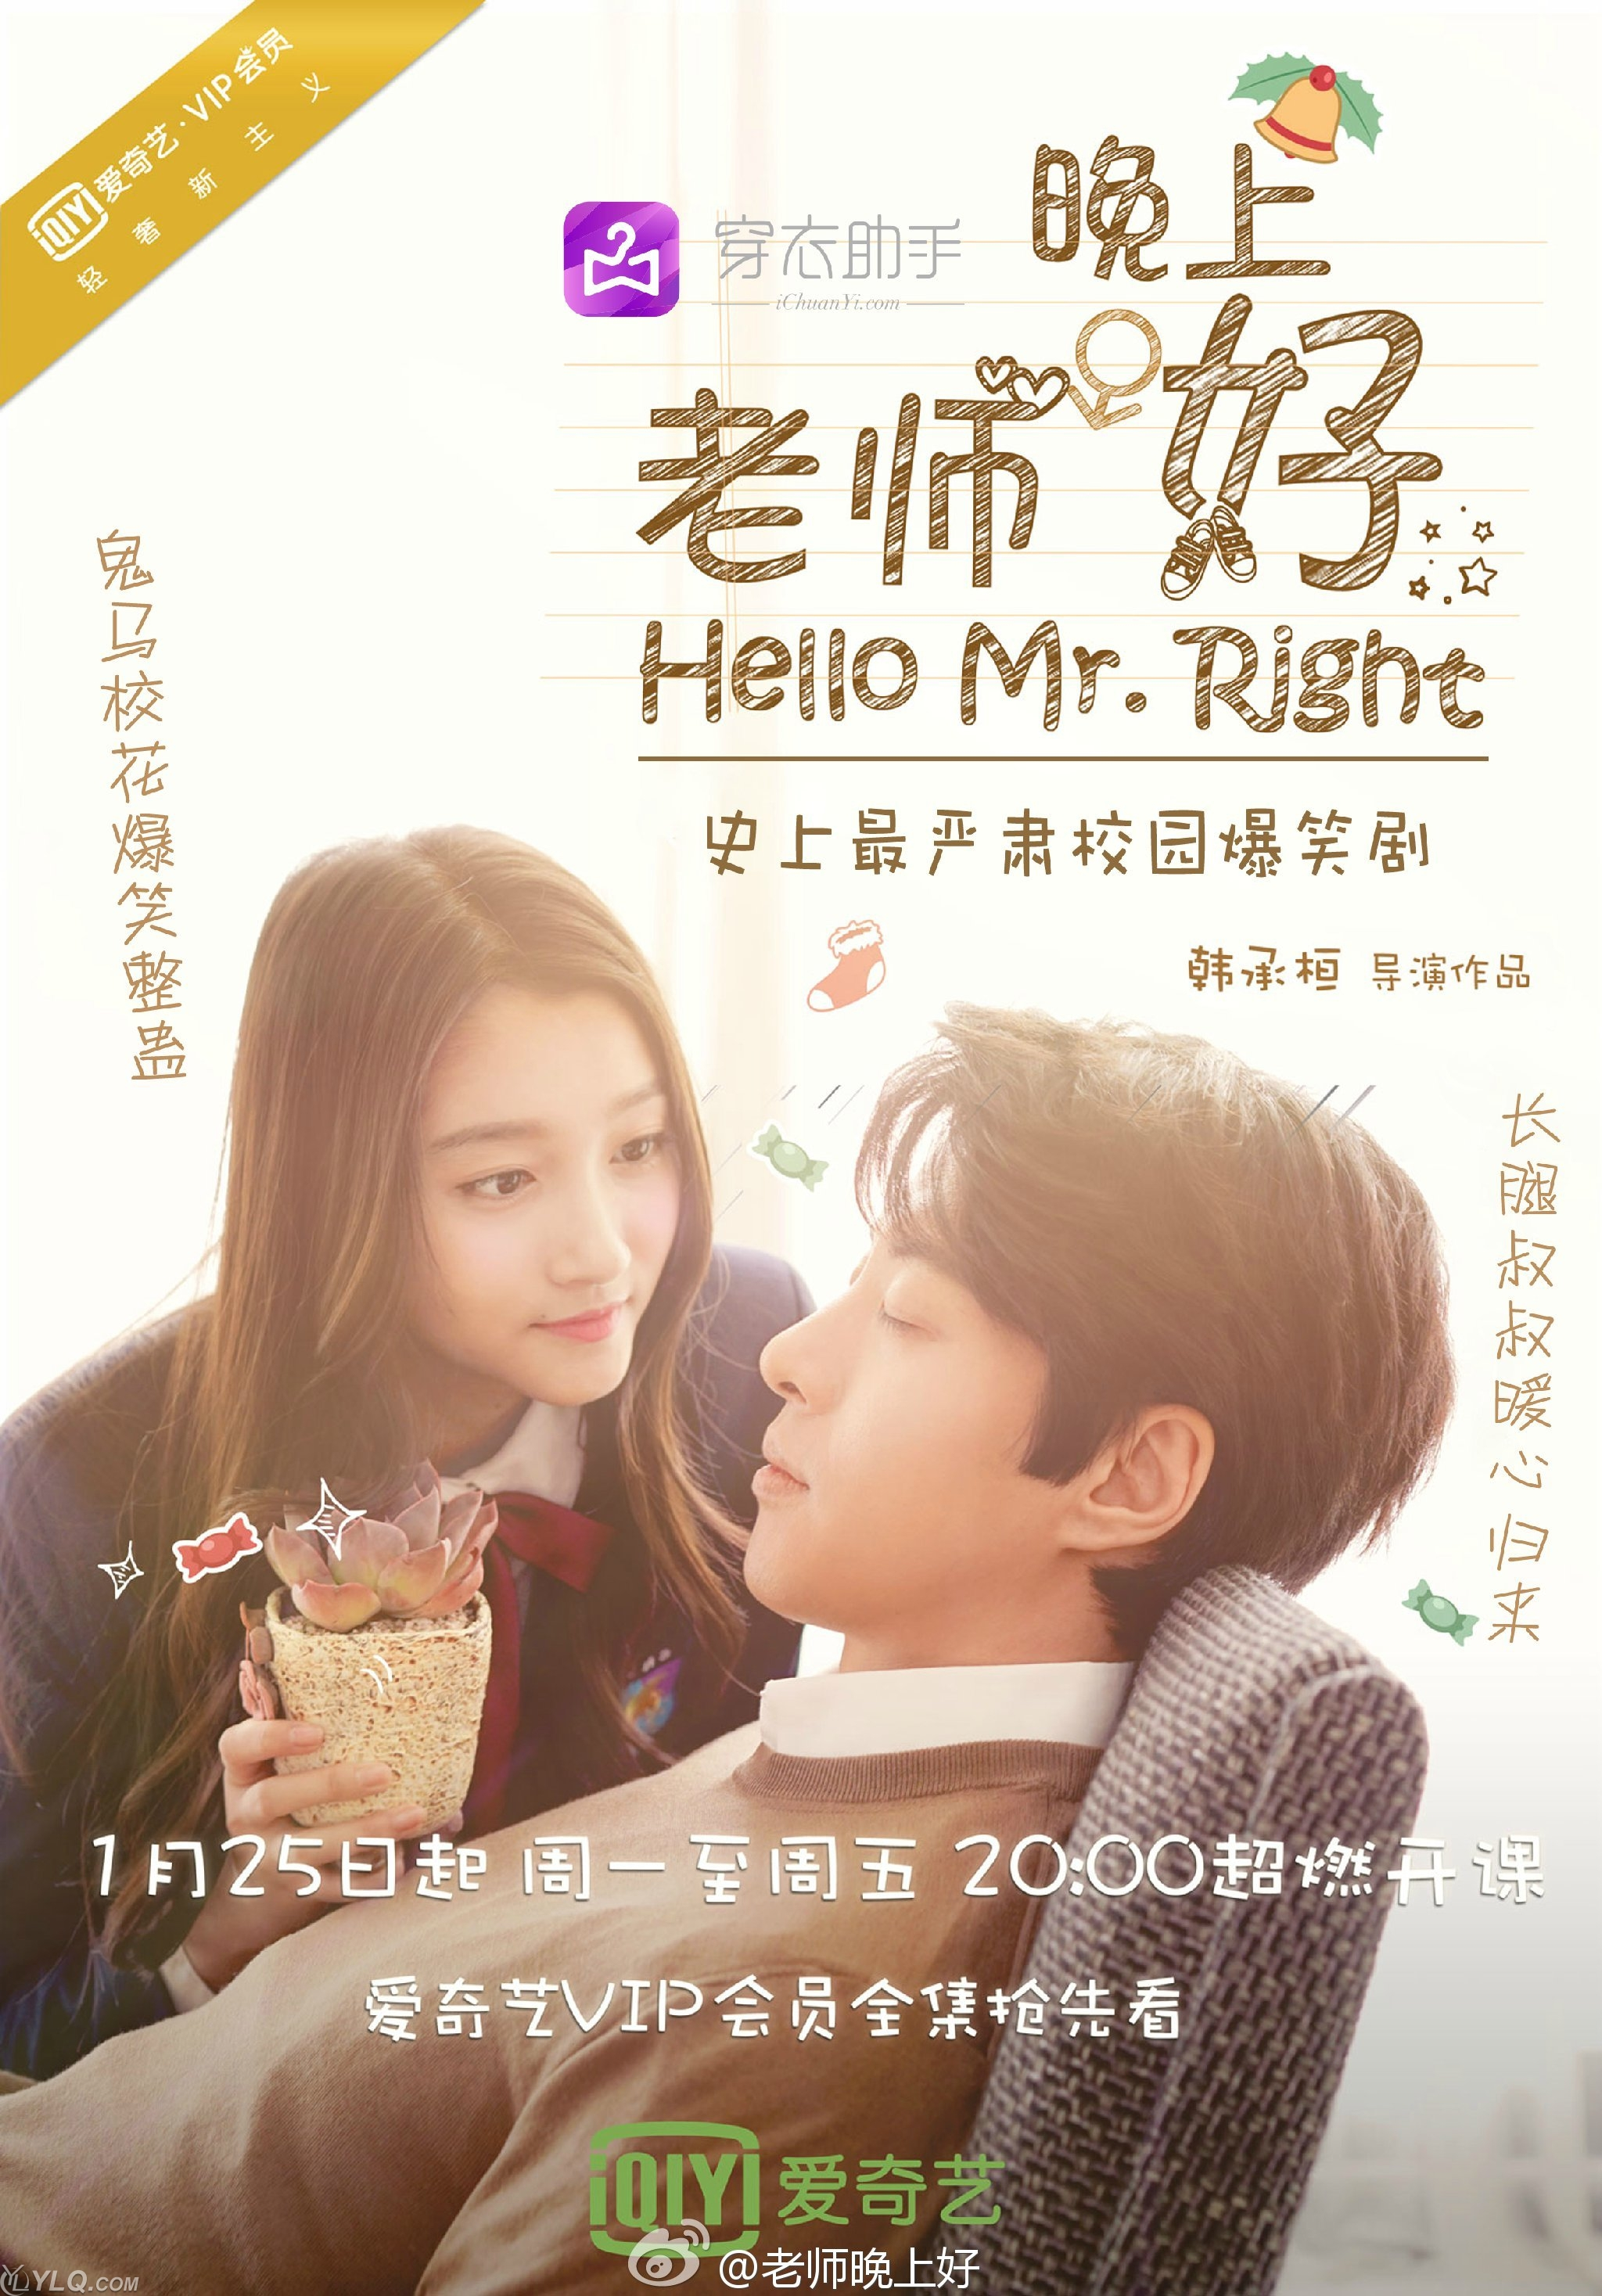 Hello Mr. Right (2016)